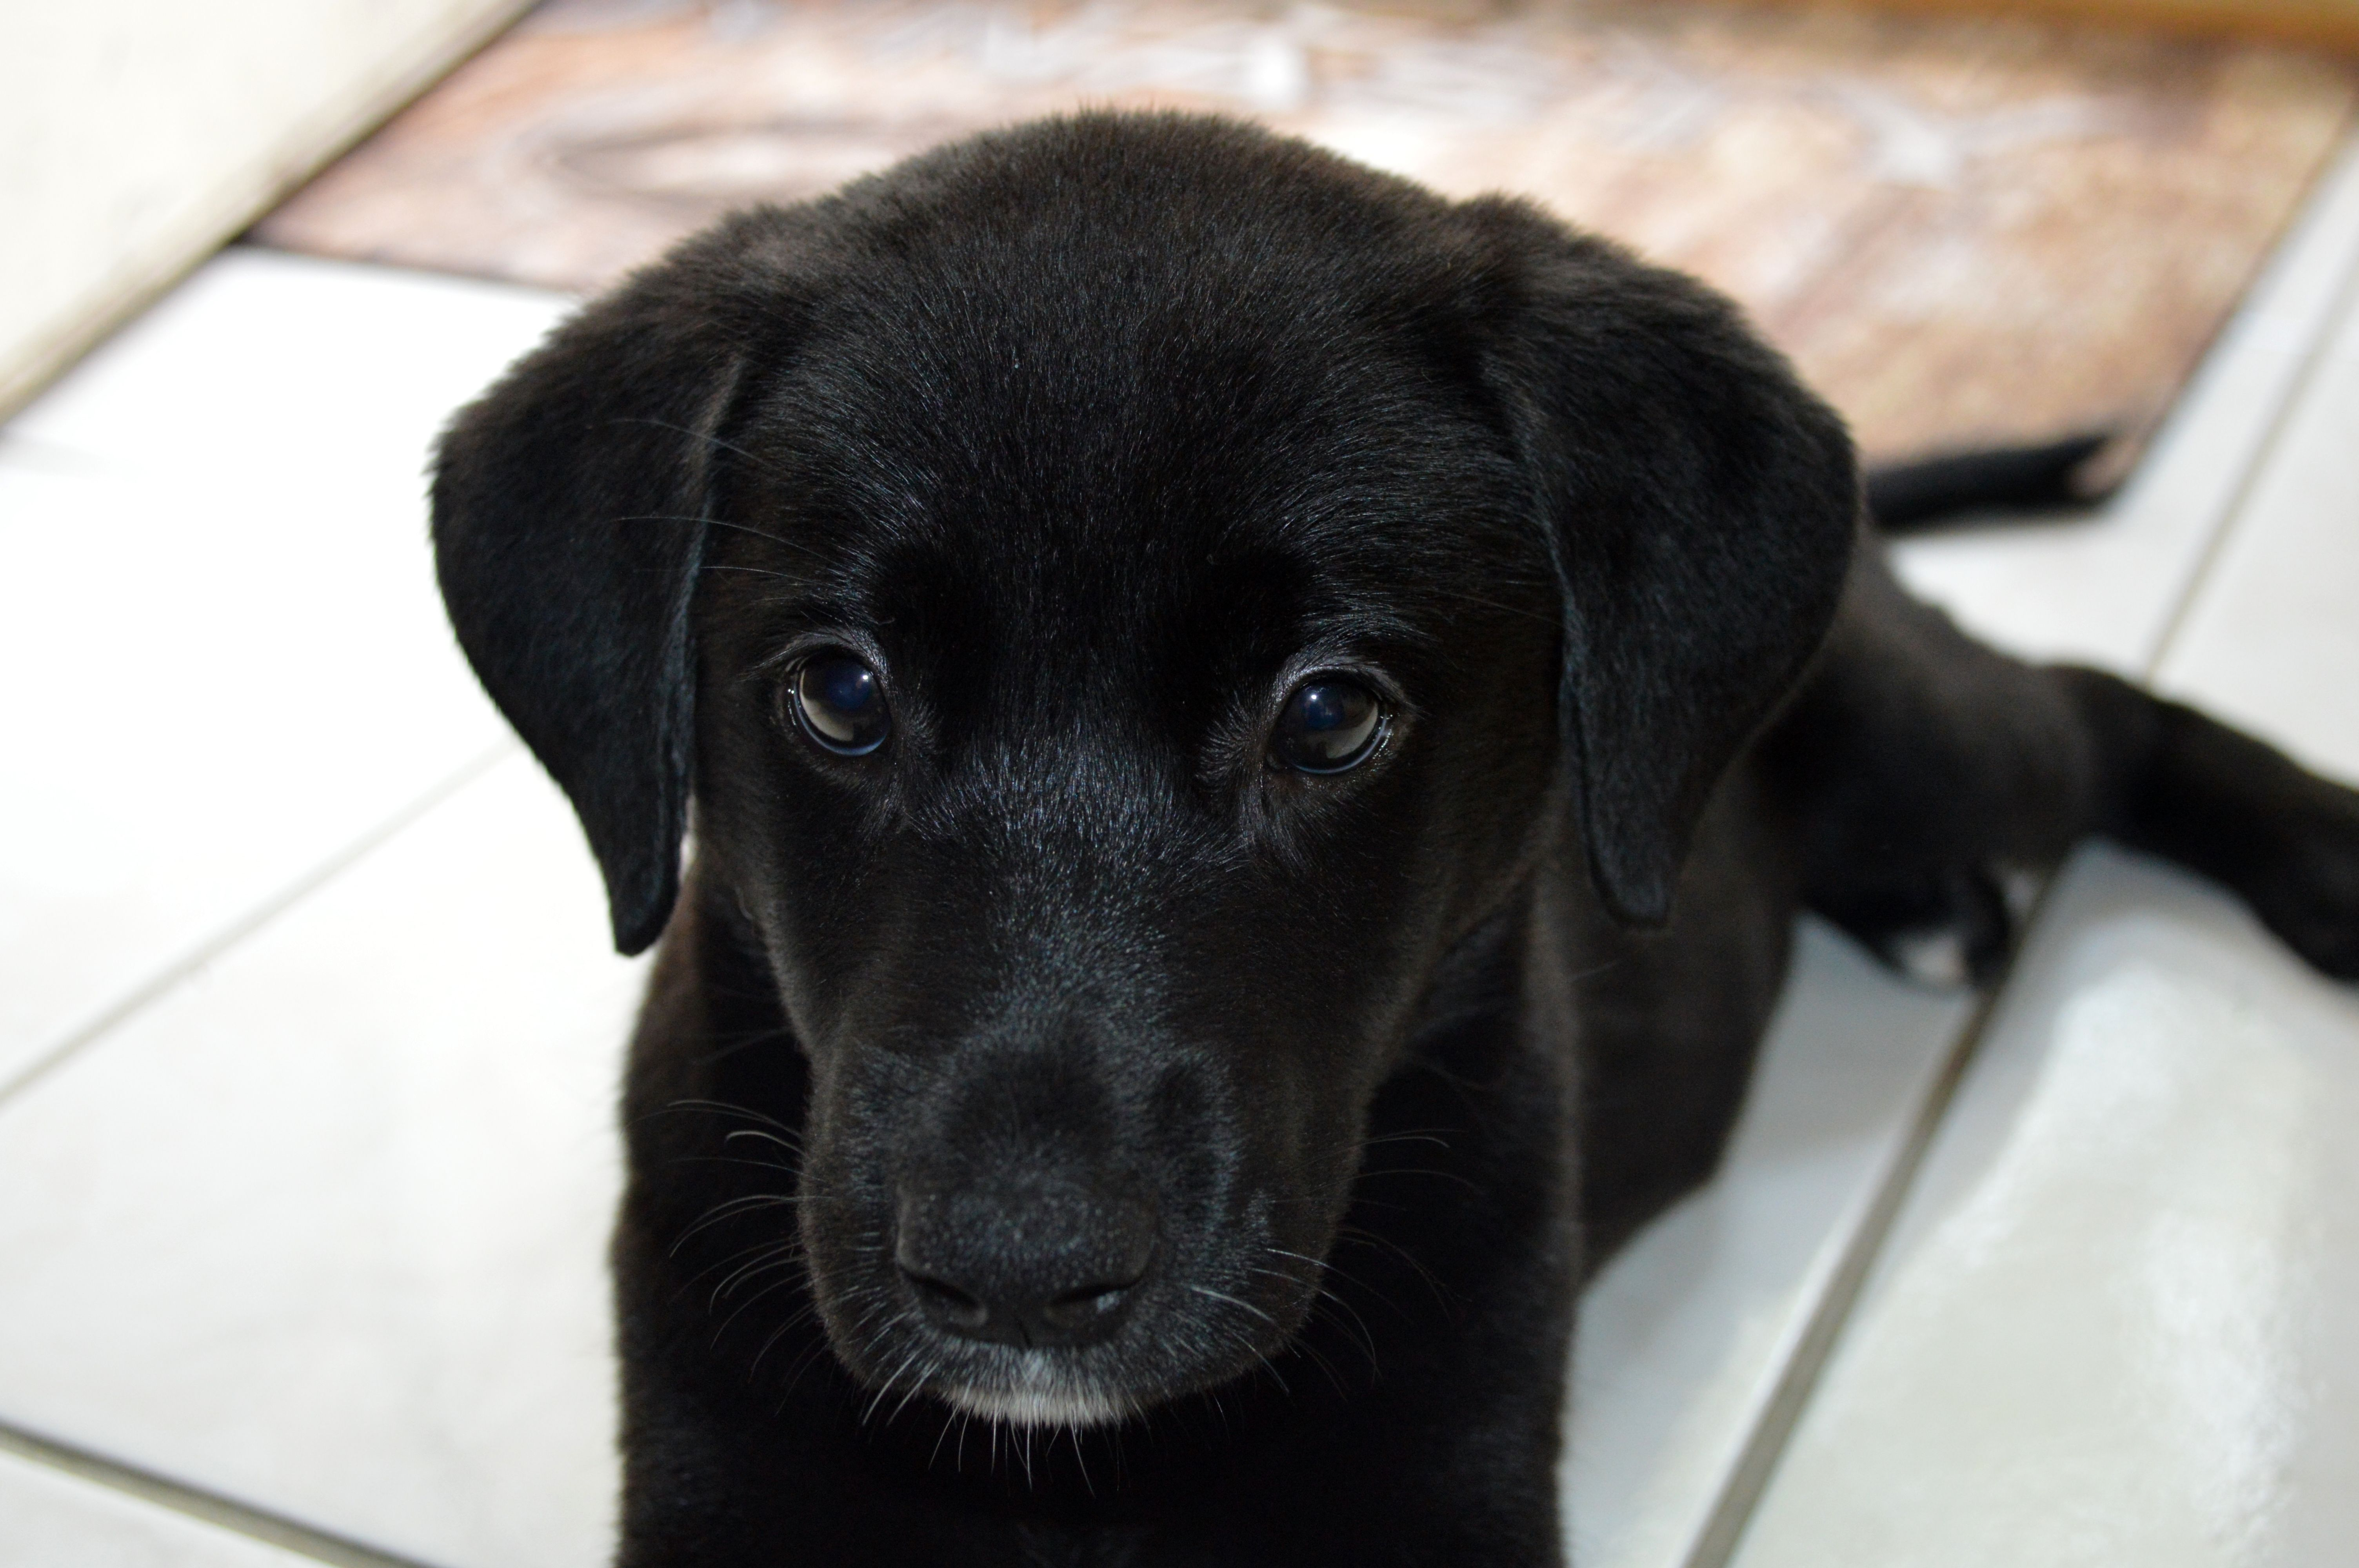 This Is My 11 Week Old German Shepherd Lab Mix Puppy Brandy Isn T She Adorable Lab Mix Puppies Puppies Doggy